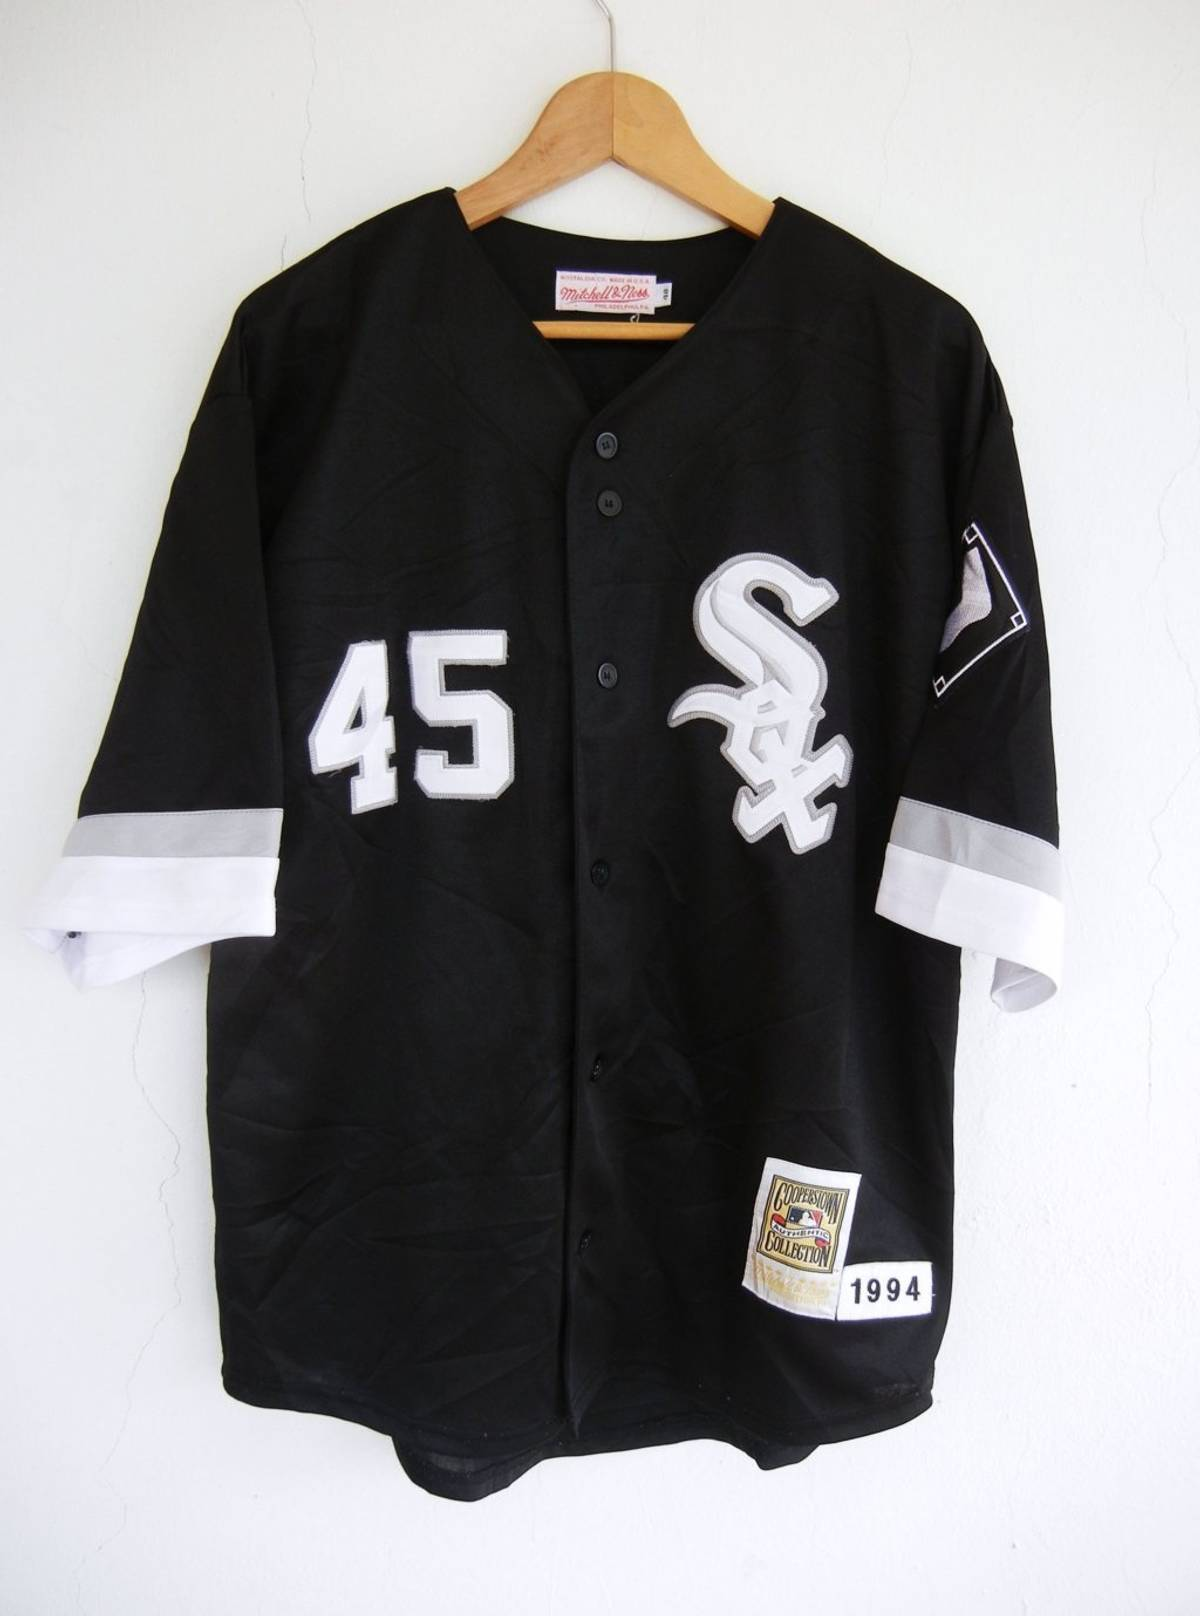 online store fae42 454d3 Mitchell & Ness Vintage 90s Mitchell & Ness Michael Jordan Chicago White  Sox Baseball Jersey #45 Authentic Sz Large Usa Size L $85